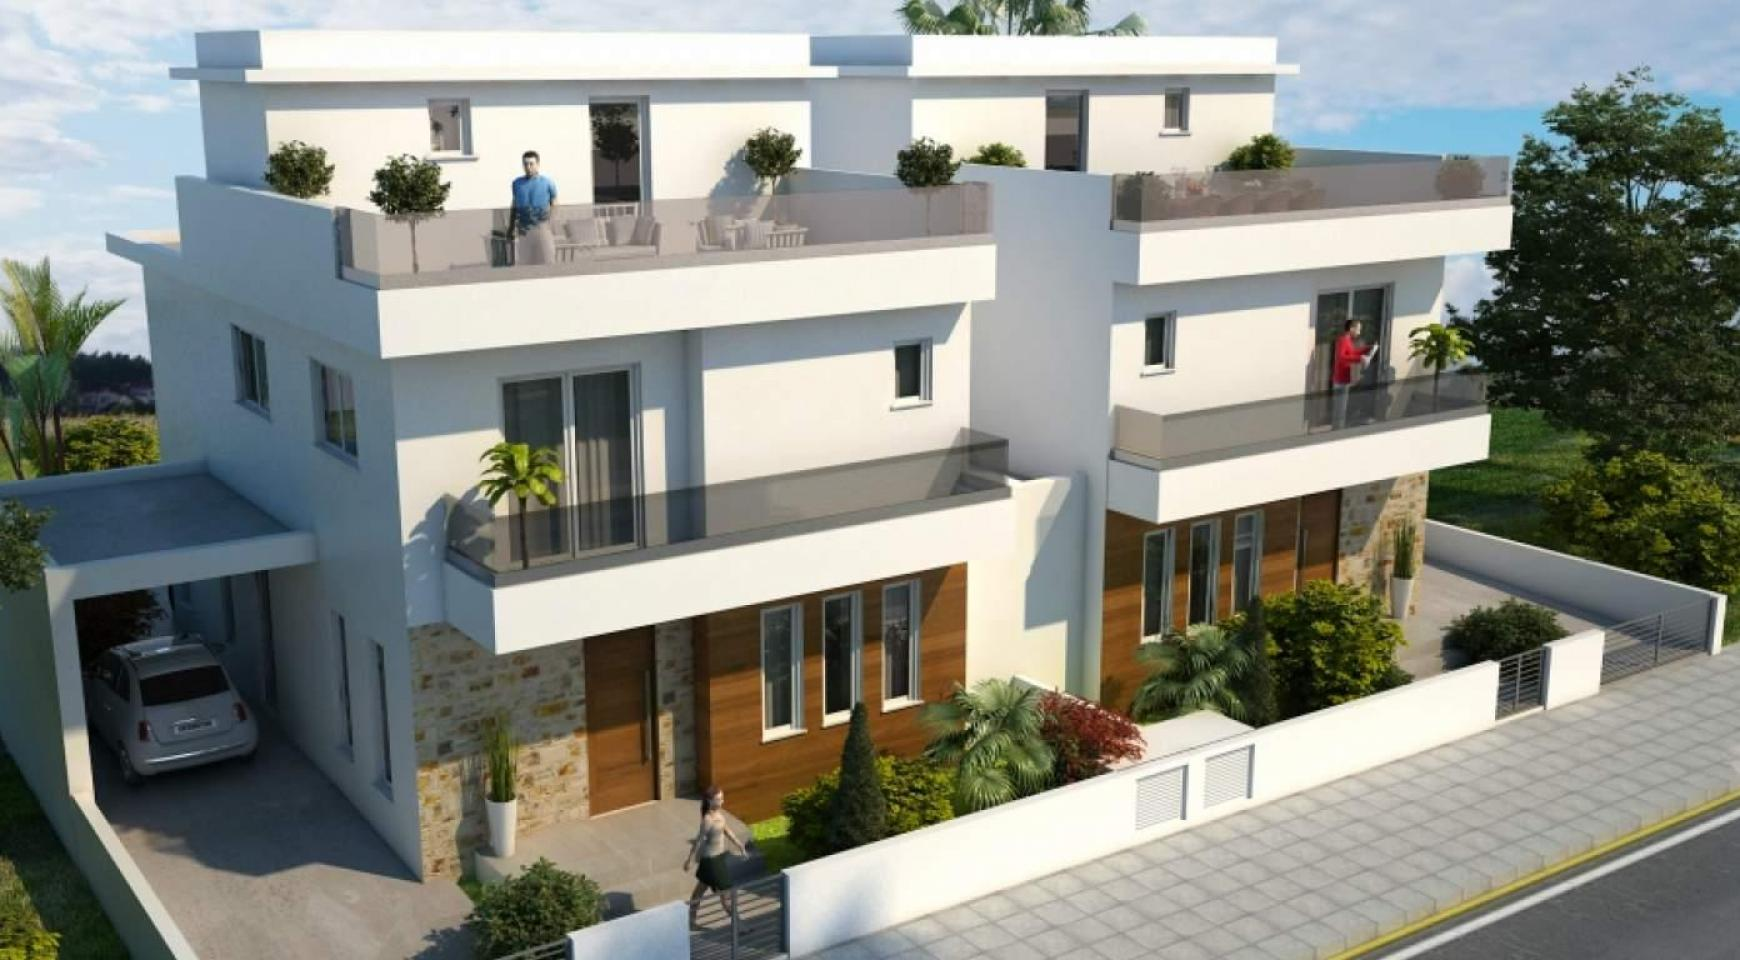 4 Bedroom House in Leivadia Area - 4